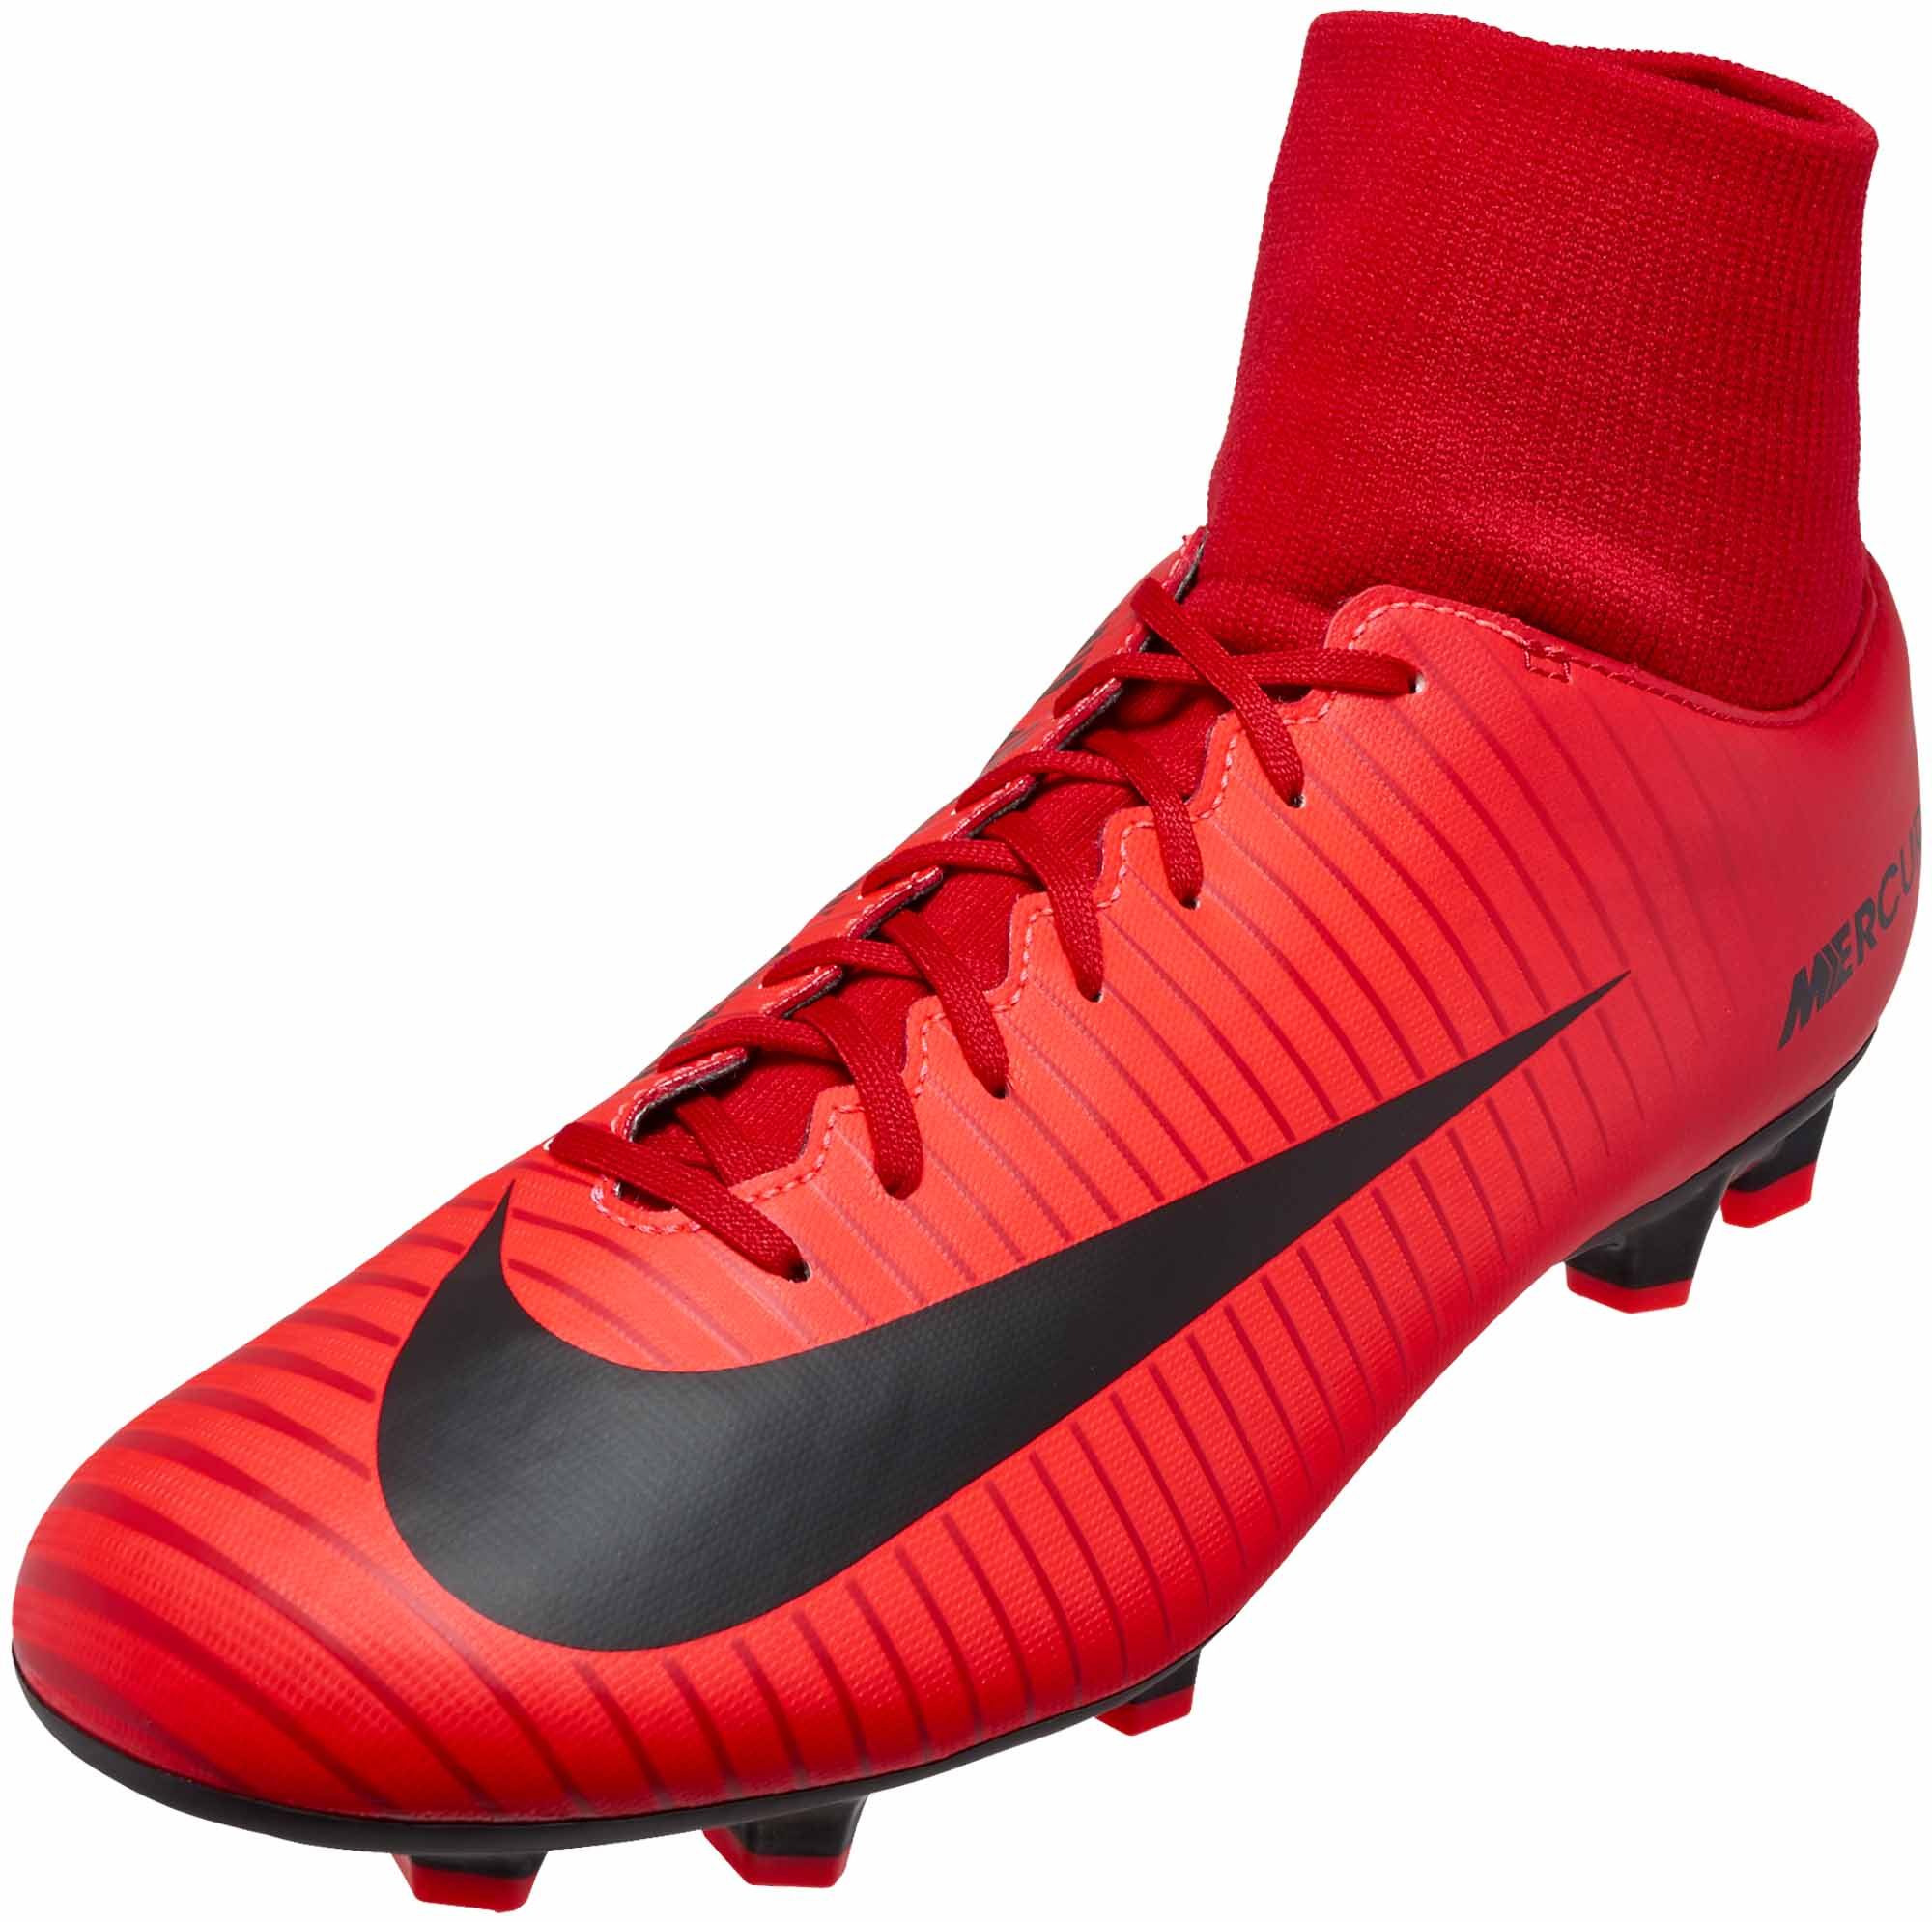 a3a6a618a Nike Mercurial Victory VI DF FG - University Red   Black - Soccer Master